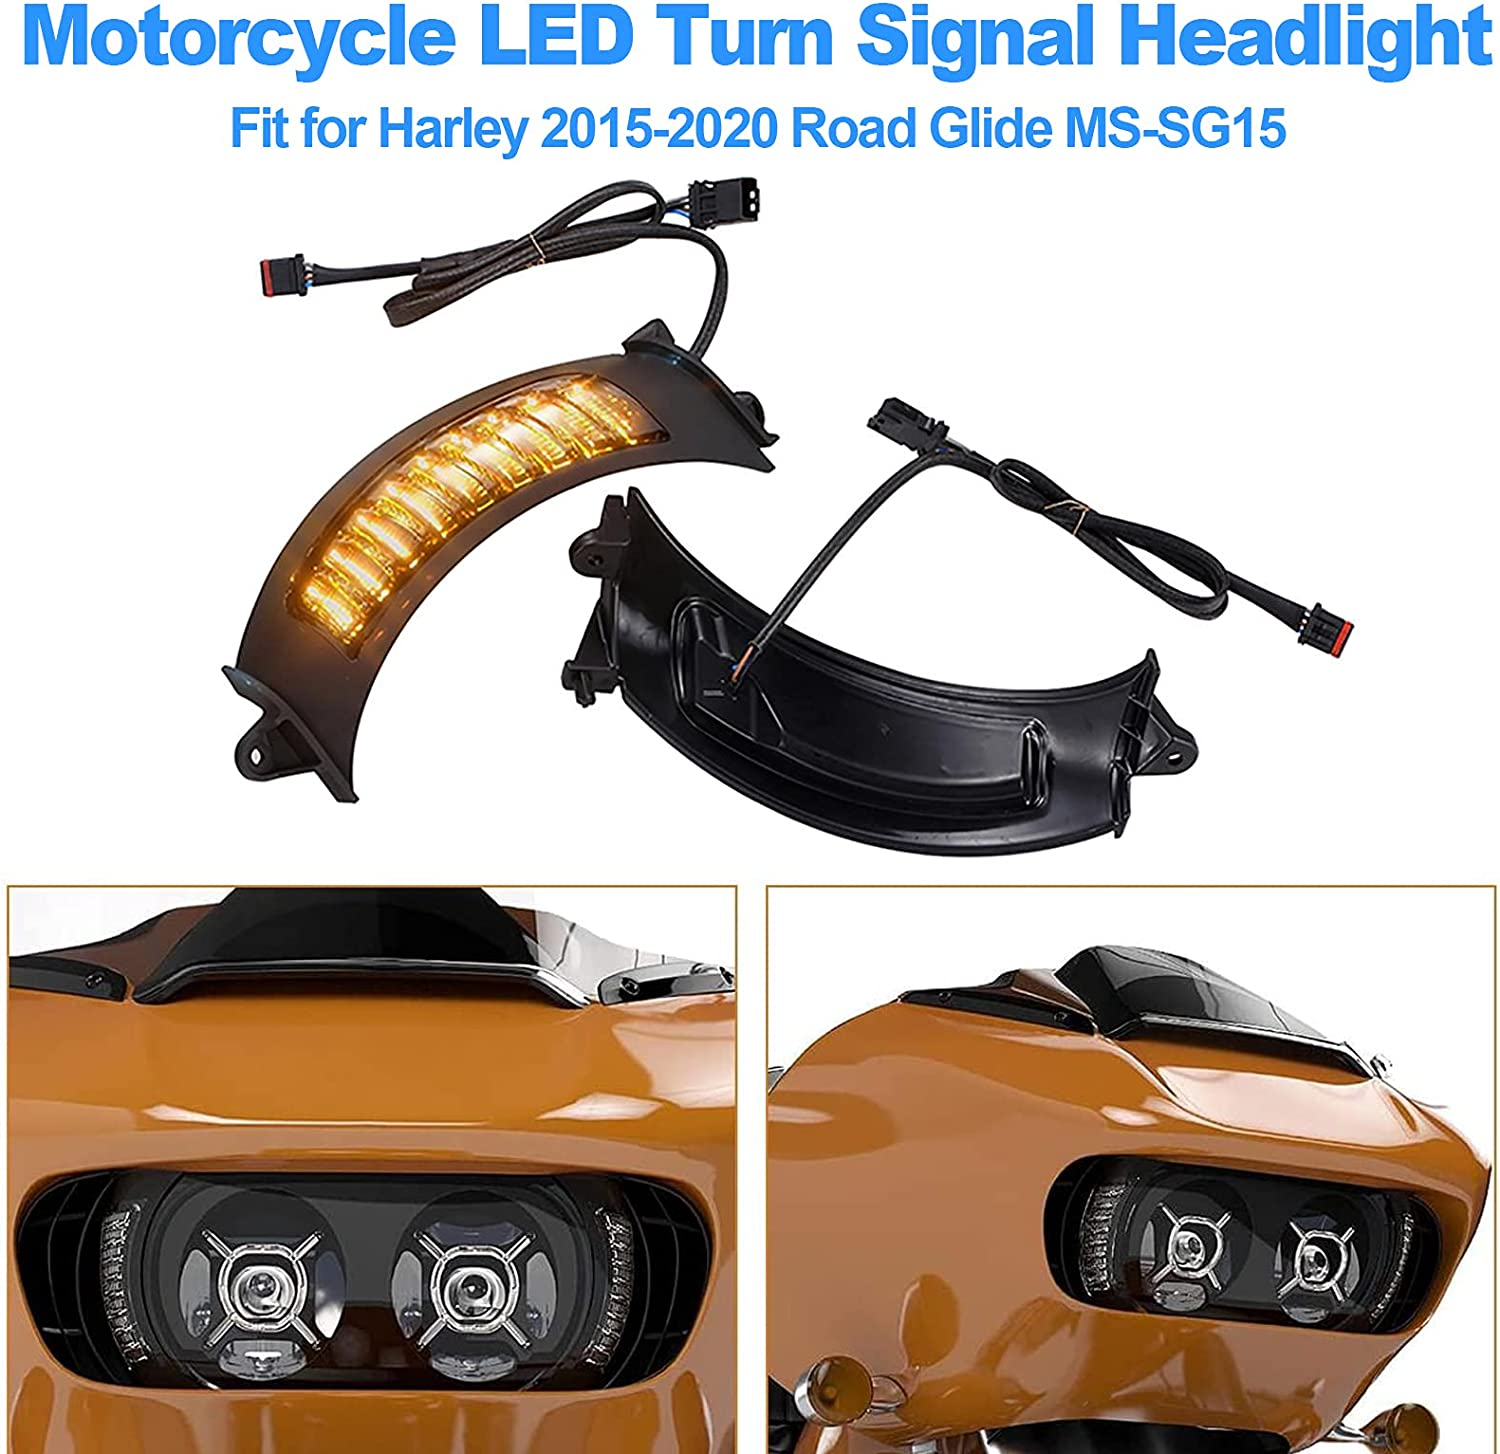 OXMART Turn Signal Light LED Motorcycle Driving Clearance SALE Limited Max 76% OFF time F Side Headlight